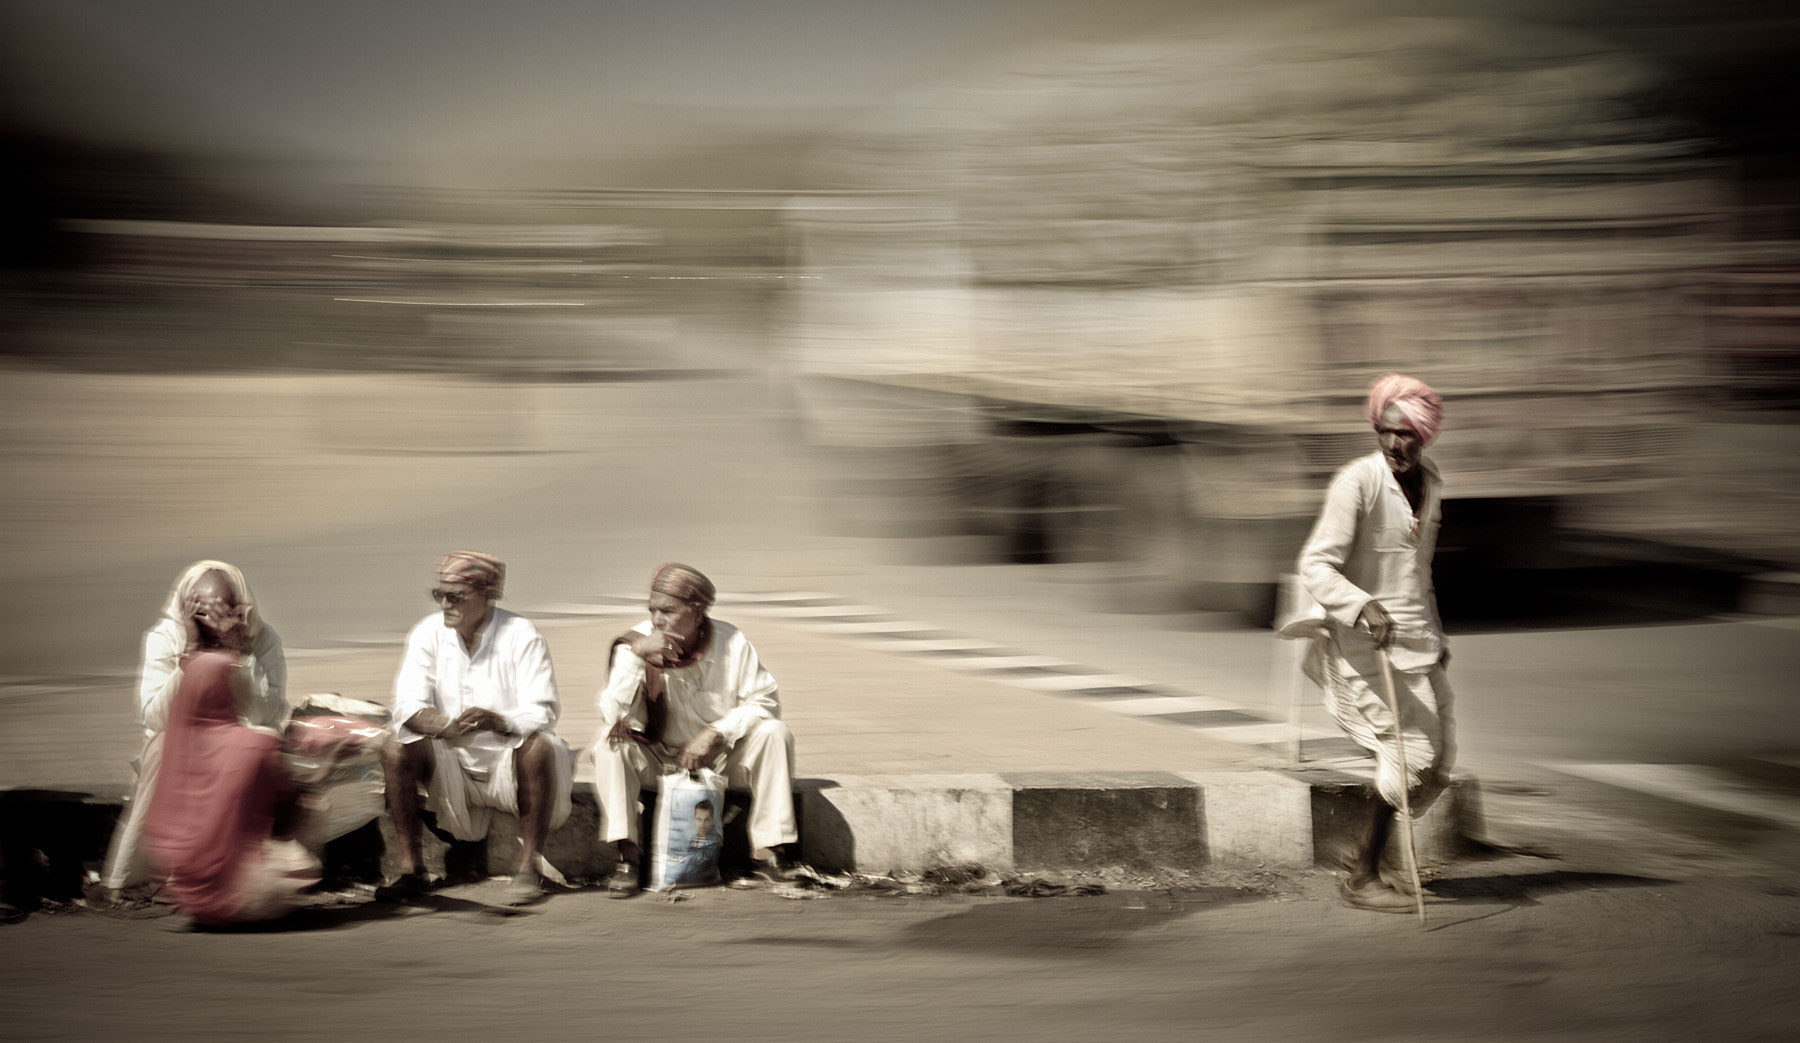 Photograph Four Men and a Woman - India In Motion - Udaipur - India by Sandy Gennrich on 500px